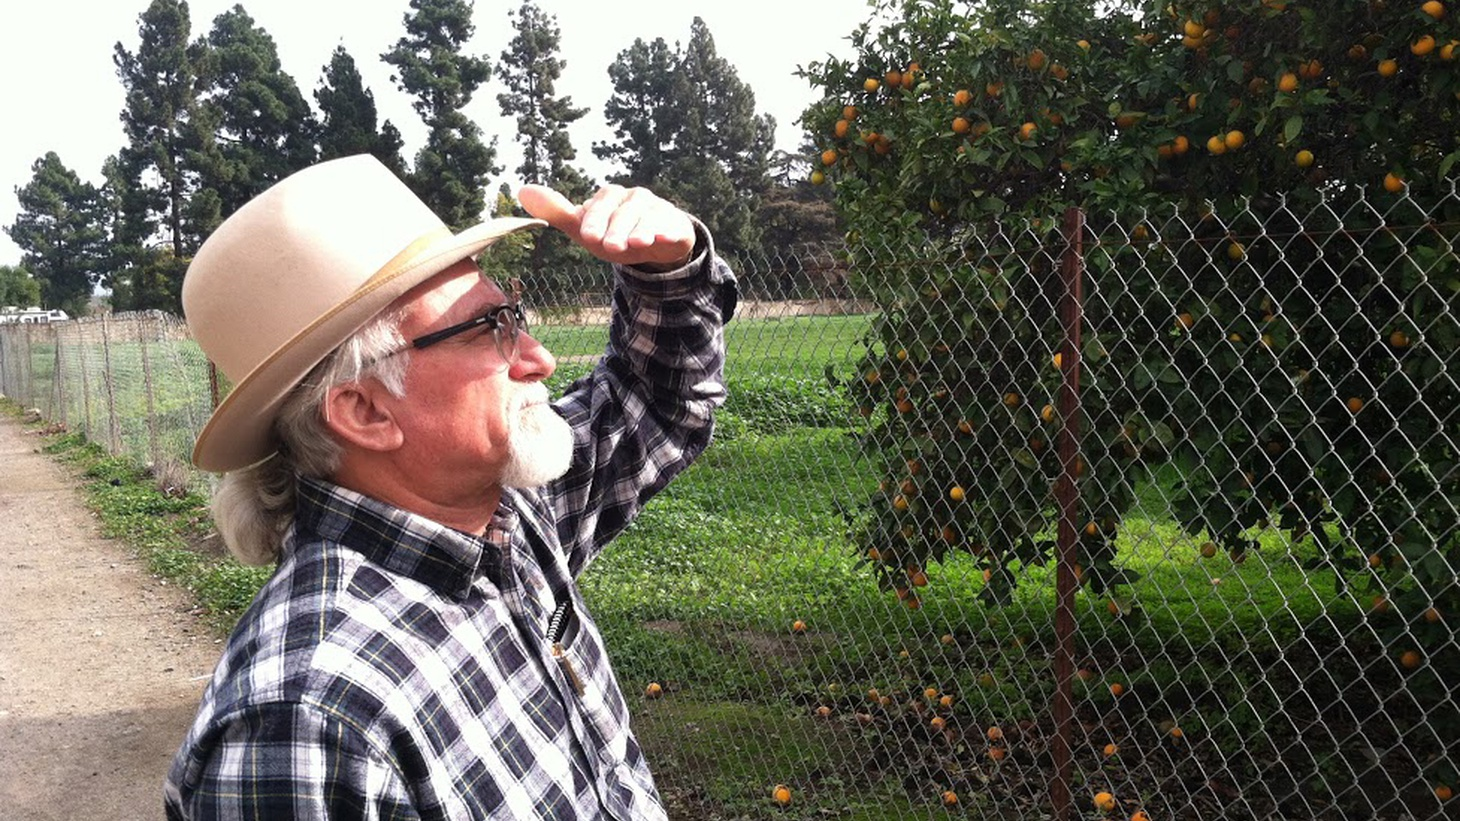 """One hundred years ago, orange groves were described as """"a second gold rush"""" in California, and they helped add to local prosperity and population growth. But looking at Orange County today, you'd hardly know how it got its name. Independent producer Daniel A. Gross has a report."""